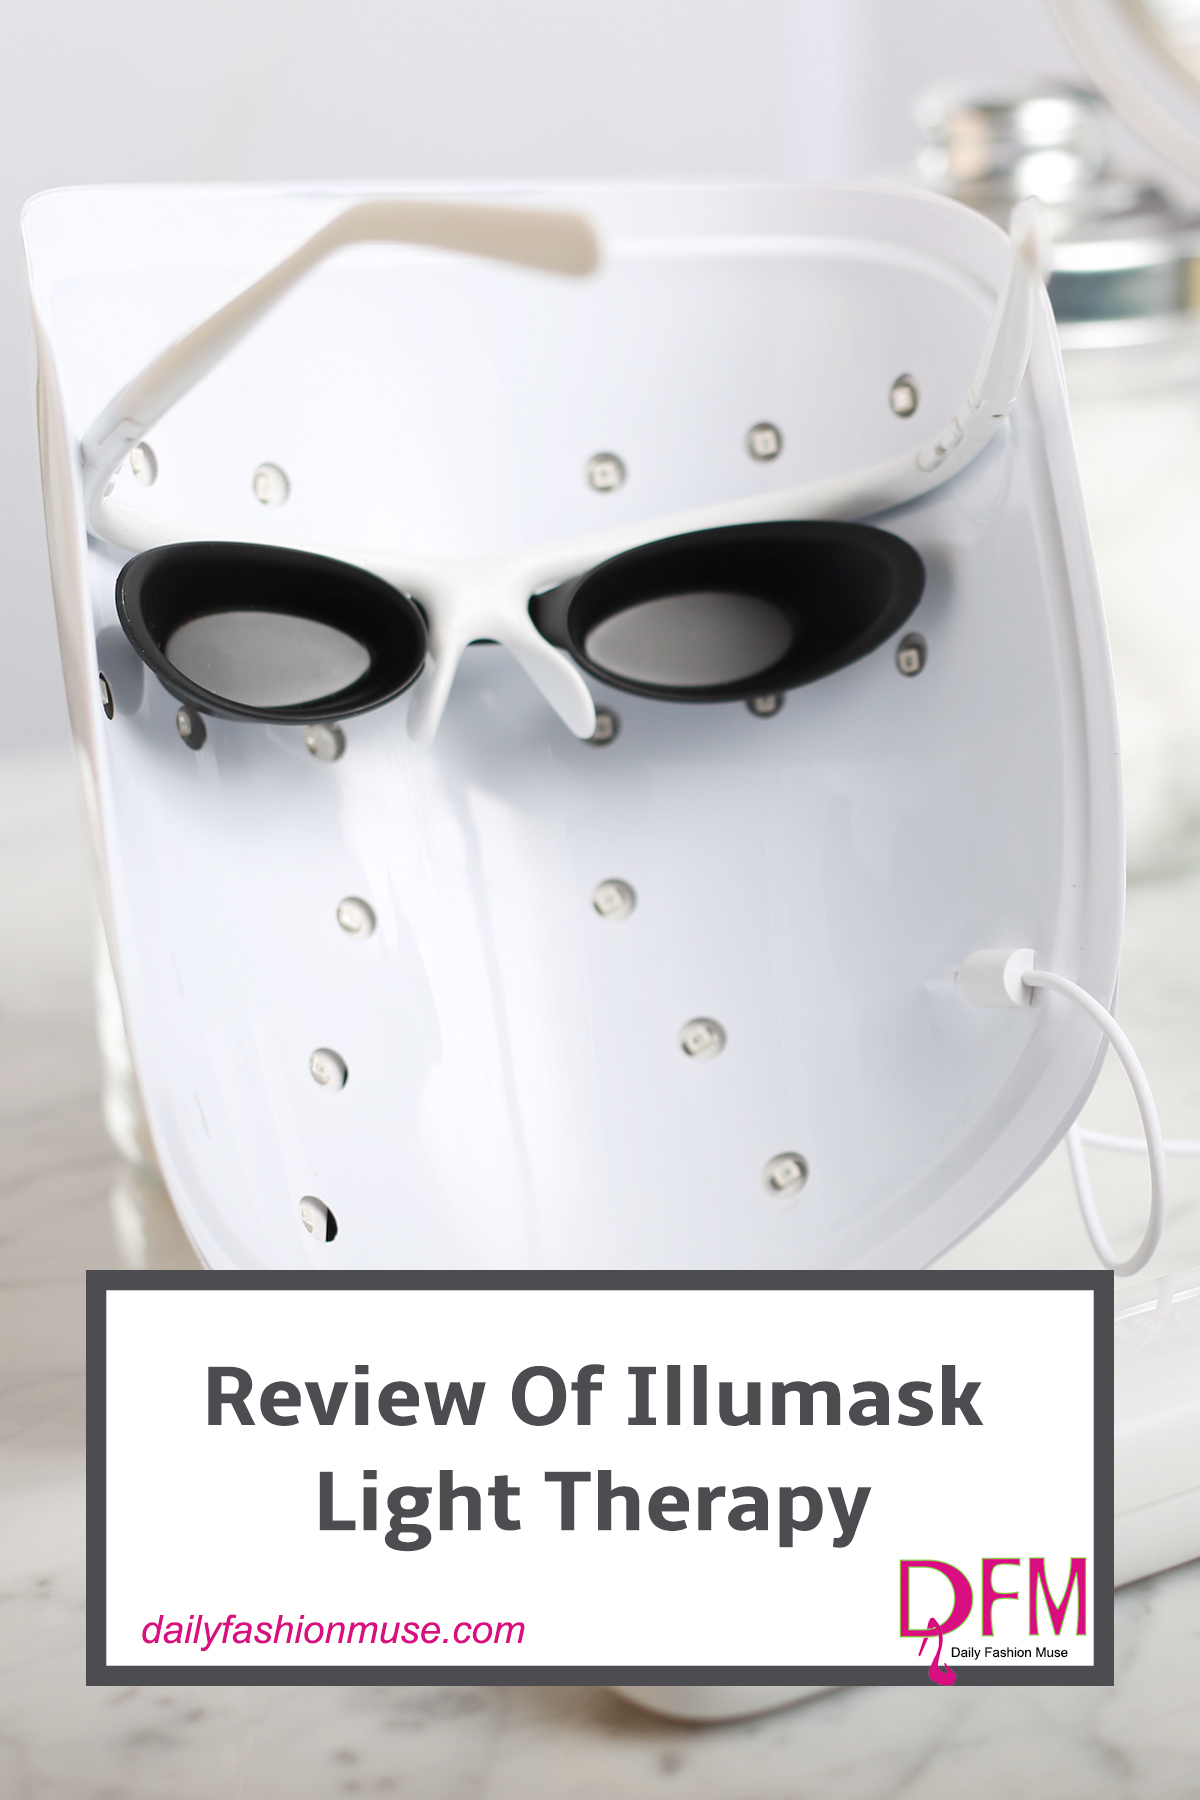 A surprising perk happens after using the Illumask Light Therapy. click through and read my review to find out what happens.